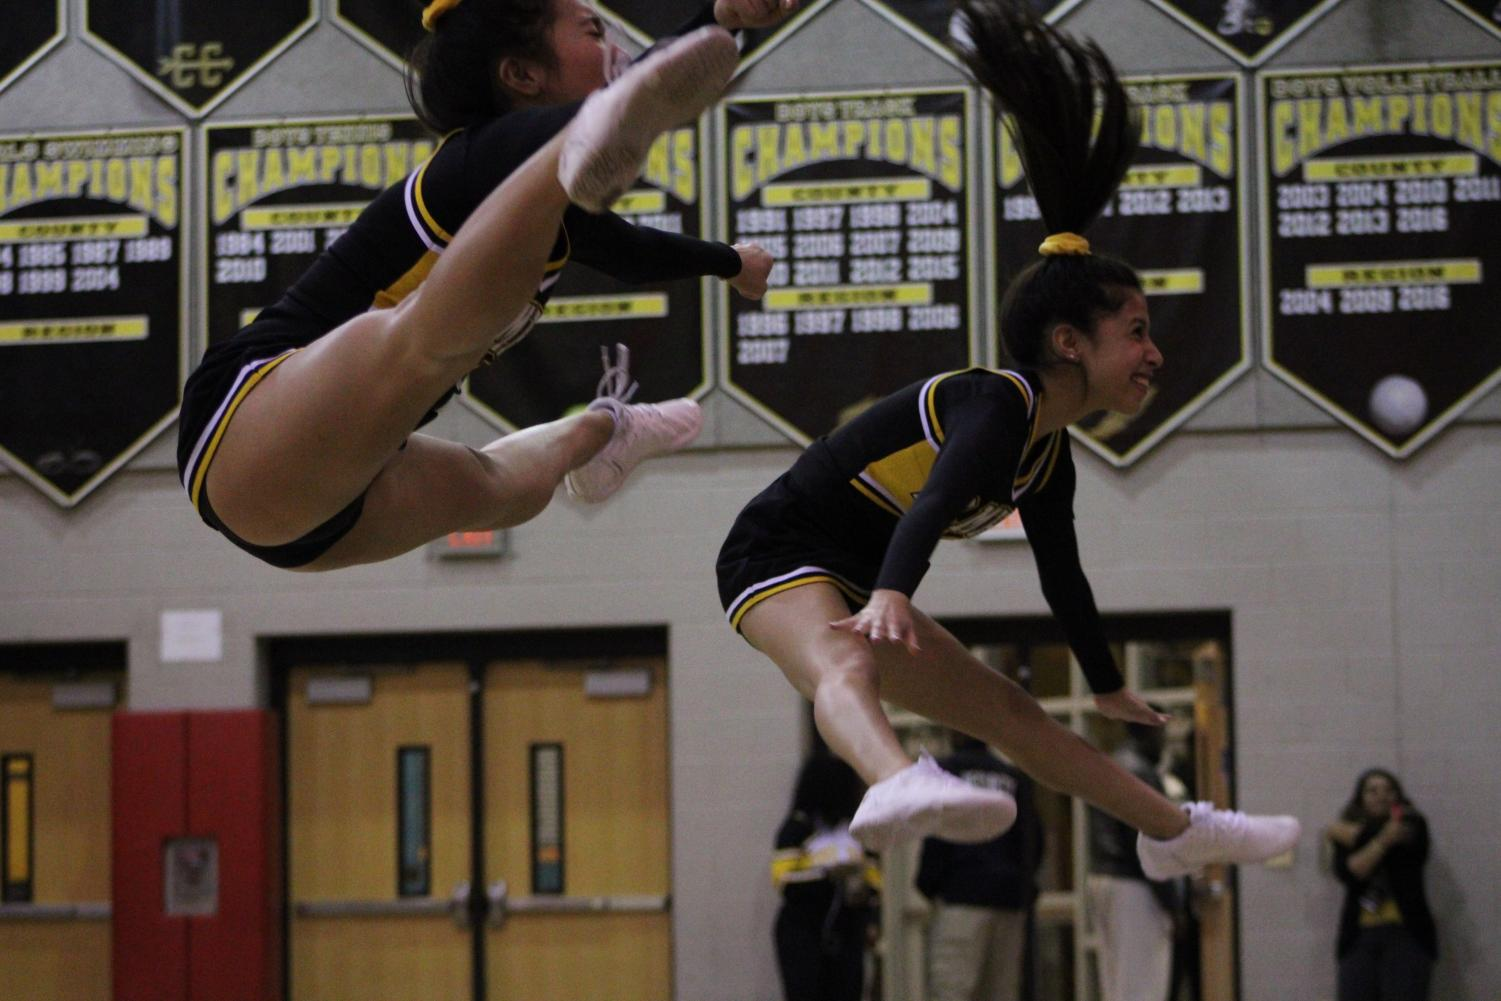 Like poms, cheer is also a two season sport: active both in the fall and winter season.